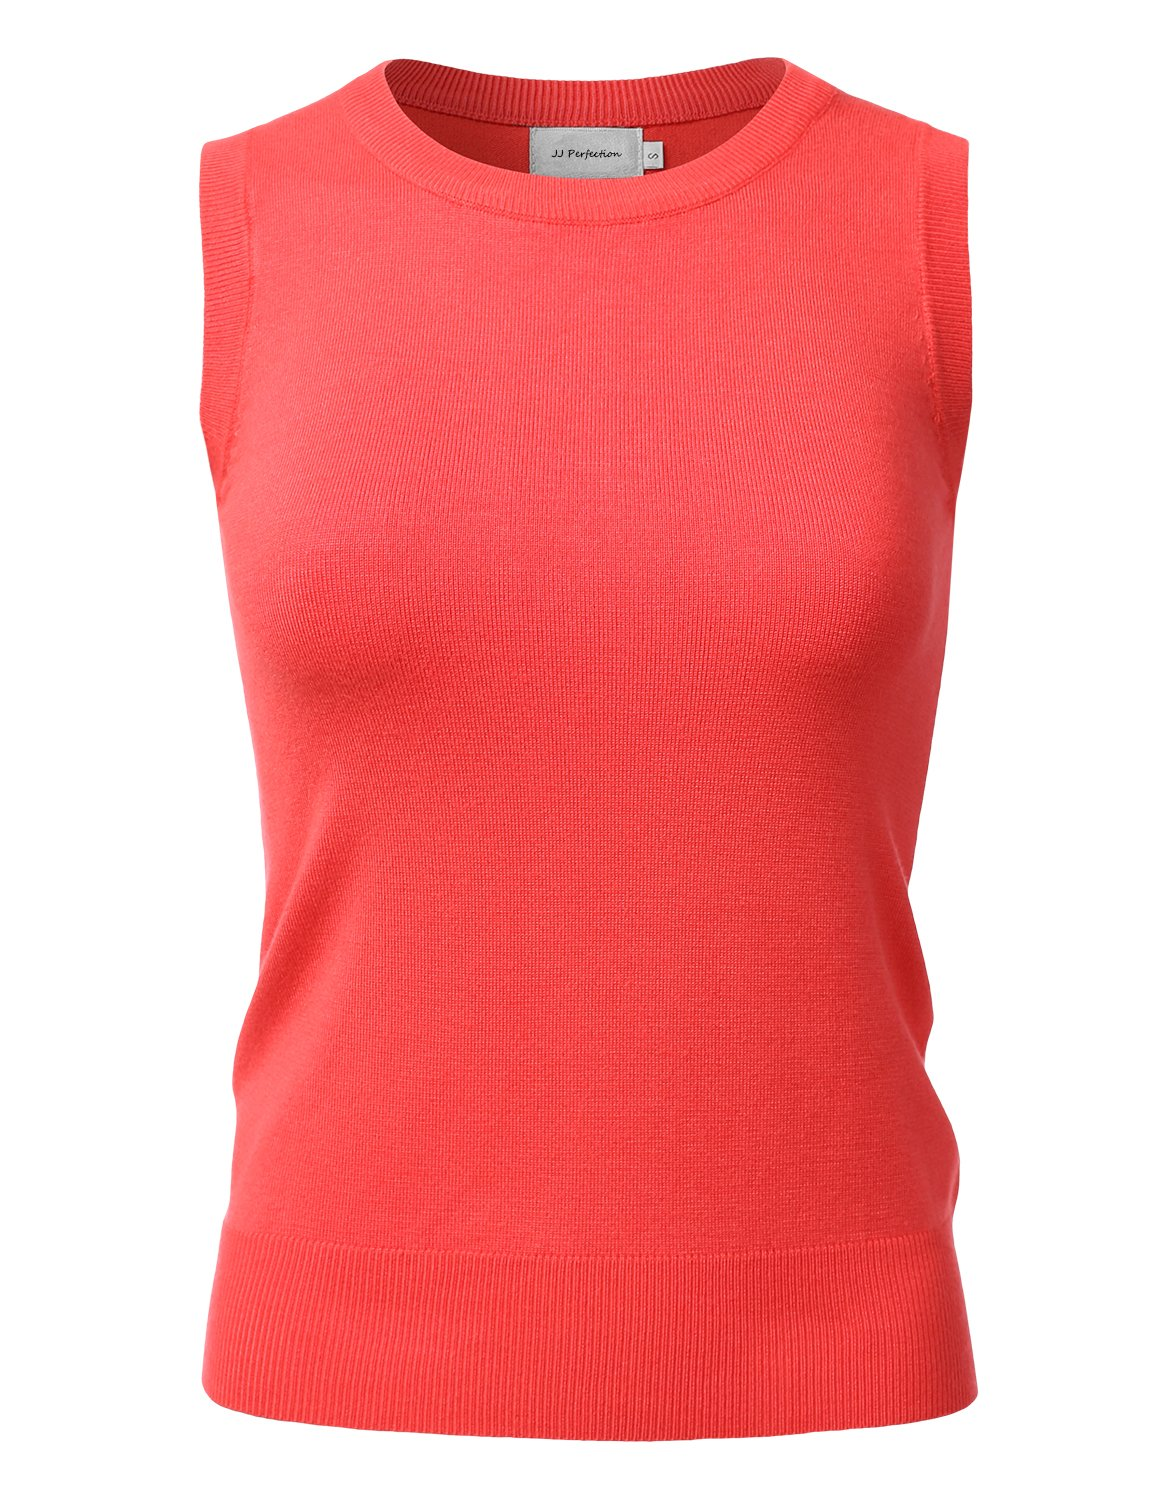 JJ Perfection Women's Stretch Knit Round Neck Sleeveless Pullover Sweater Vest Coral S